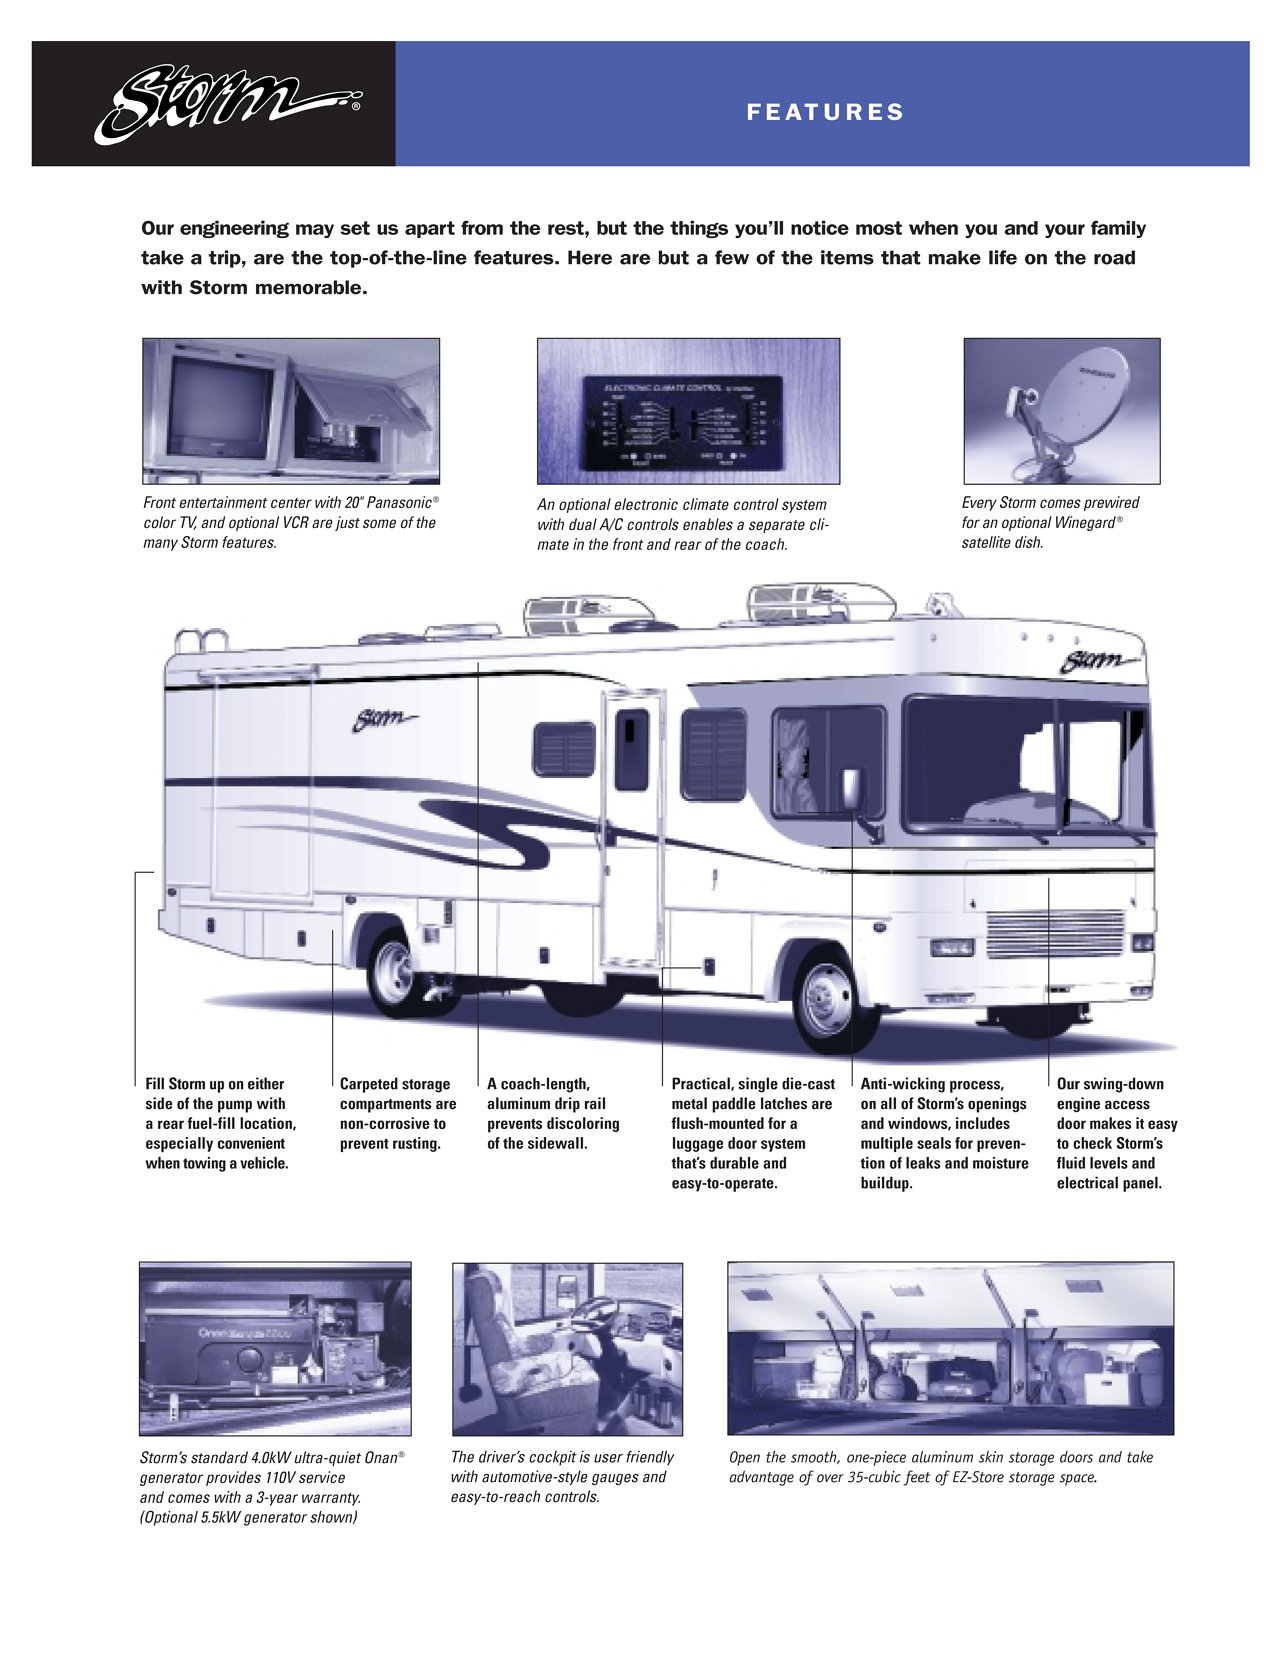 1988 Pace Arrow Electrical Diagram Trusted Wiring 2000 Fleetwood Storm Motorhome 1987 Eleganza Wire